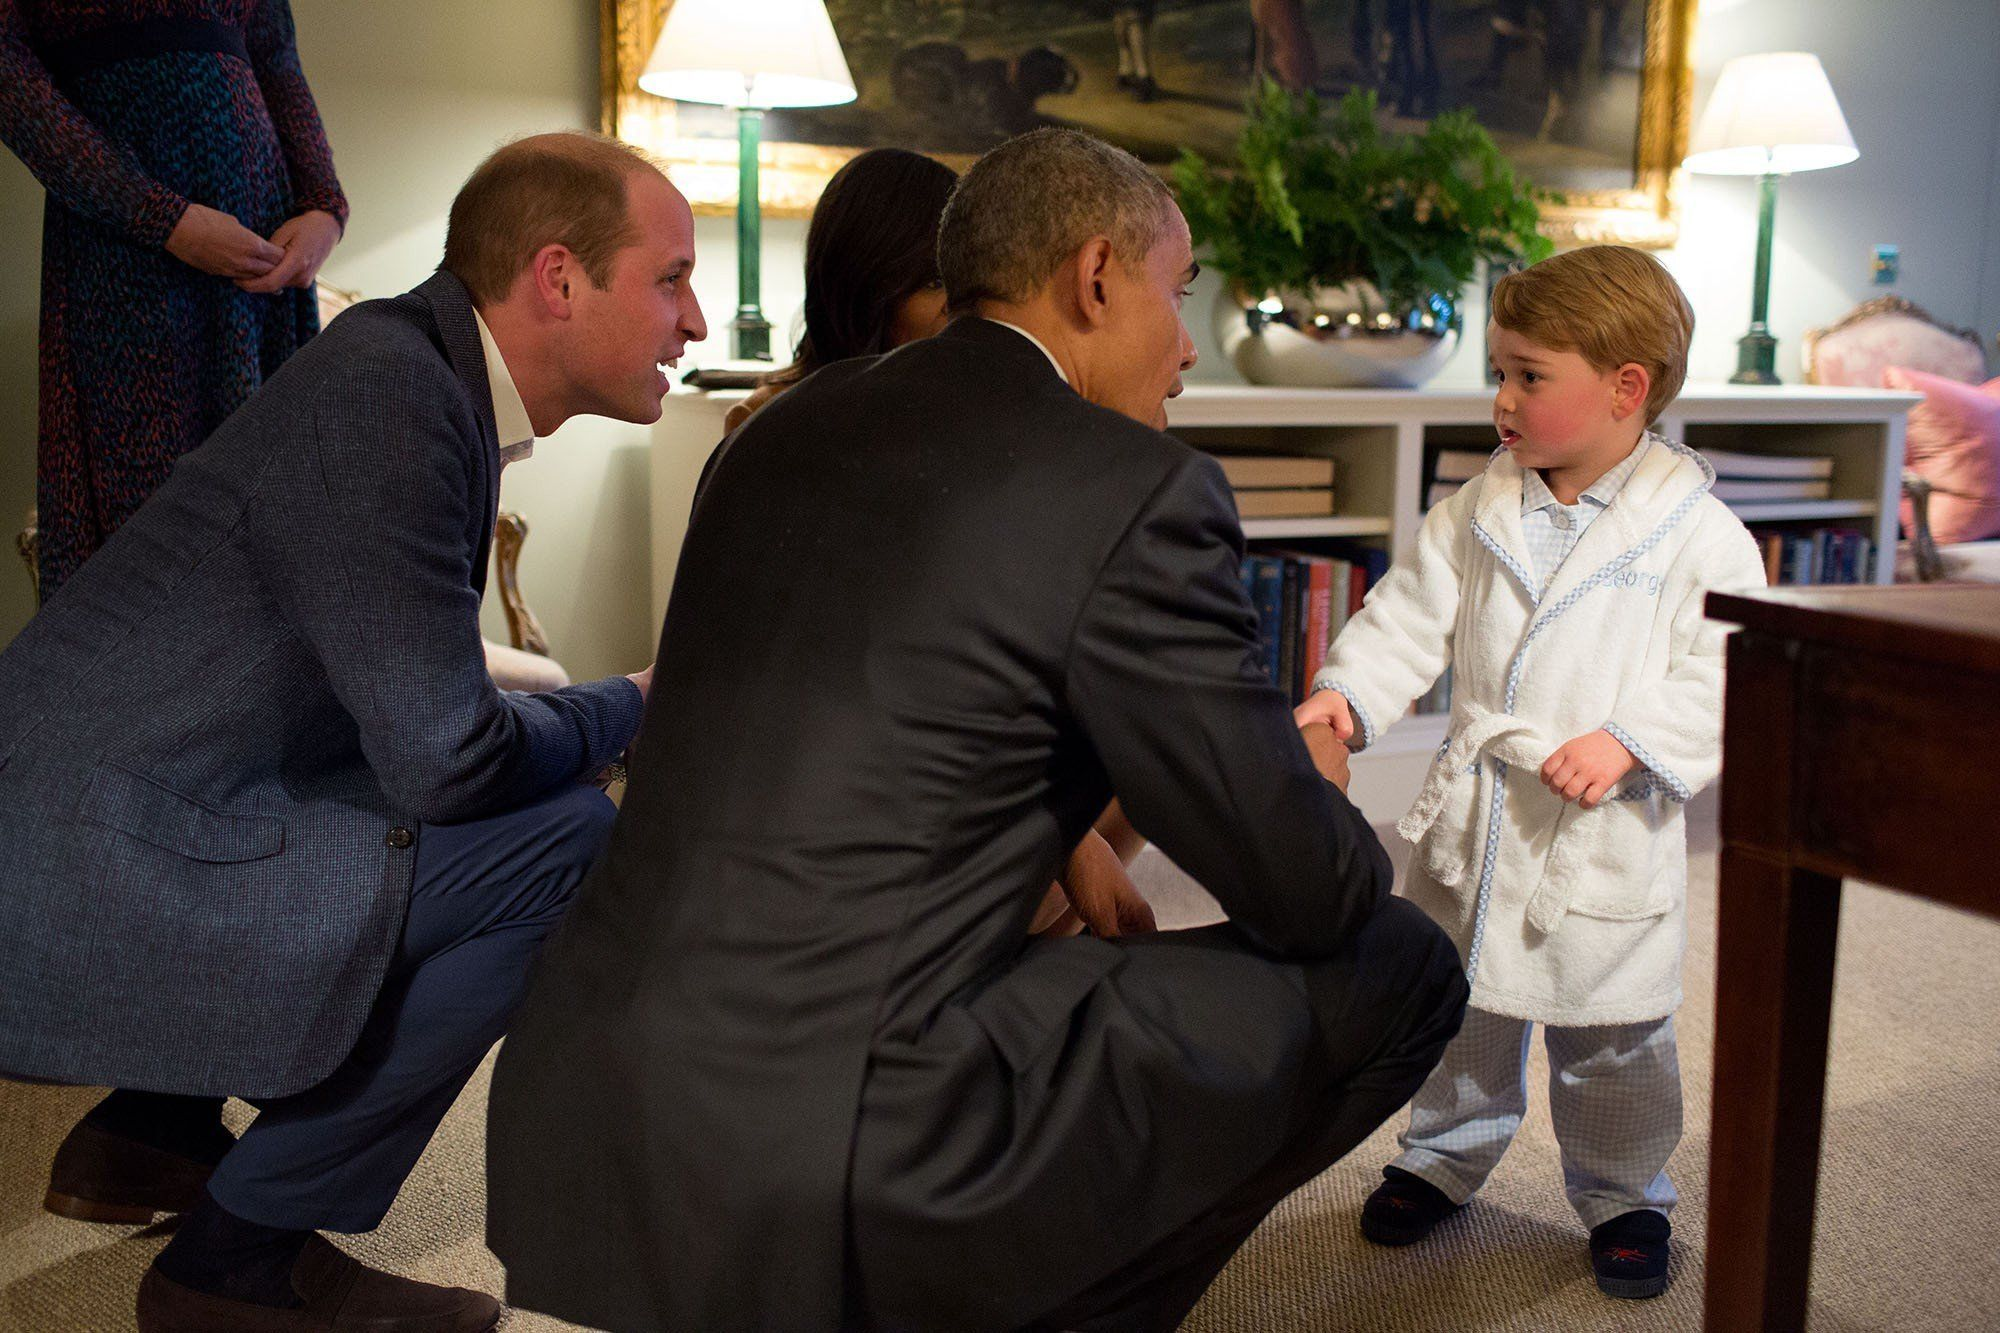 Prince George meets President Barack Obama and First Lady Michelle Obama at Kensington Palace on April 22.